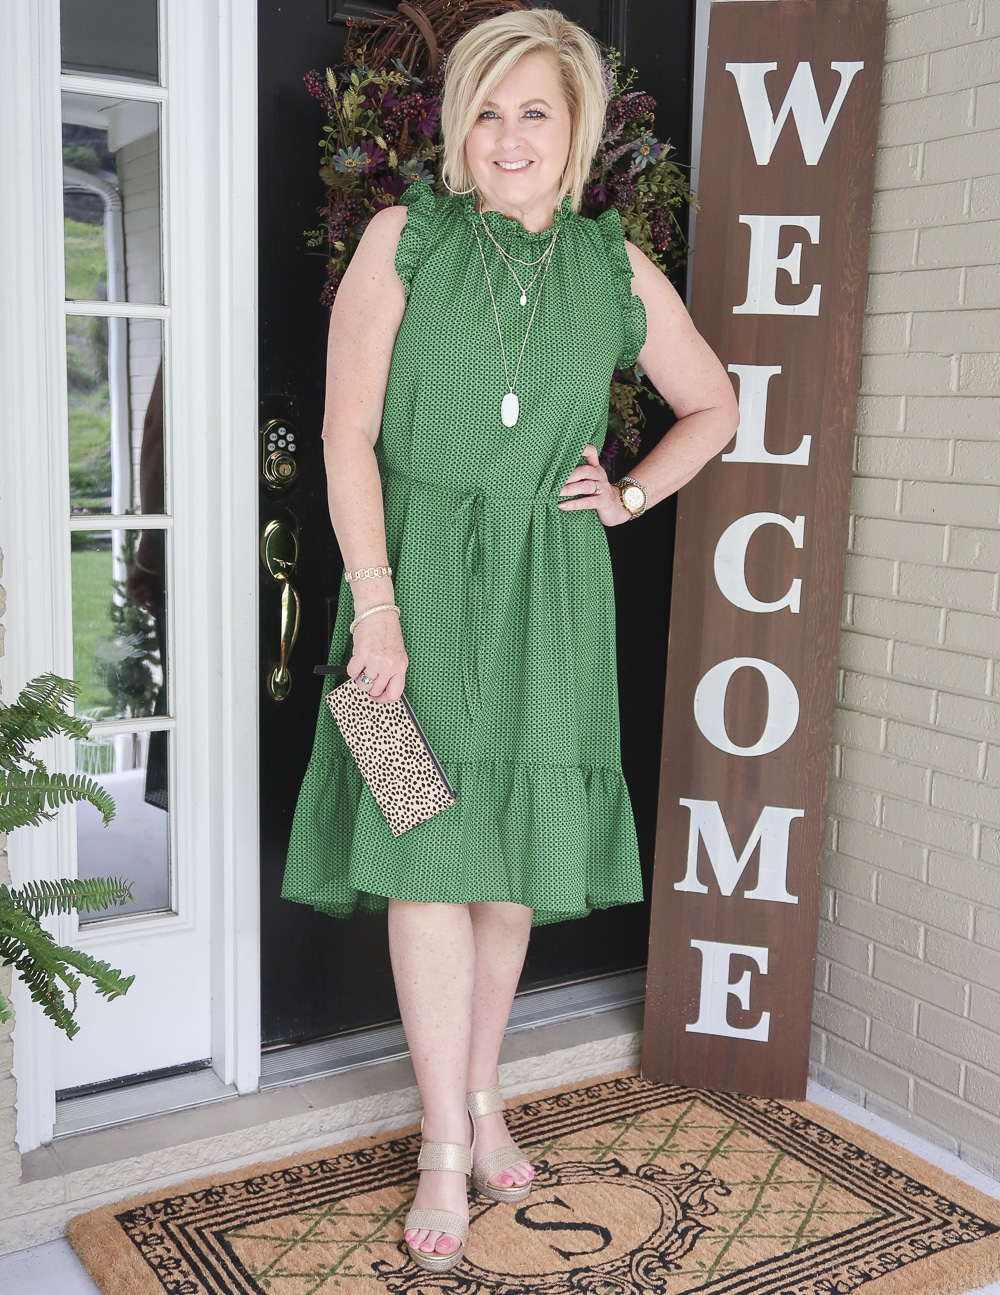 Fashion Blogger 50 Is Not Old is wearing a green polka dotted dress that has ruffles plus gold wedge shoes